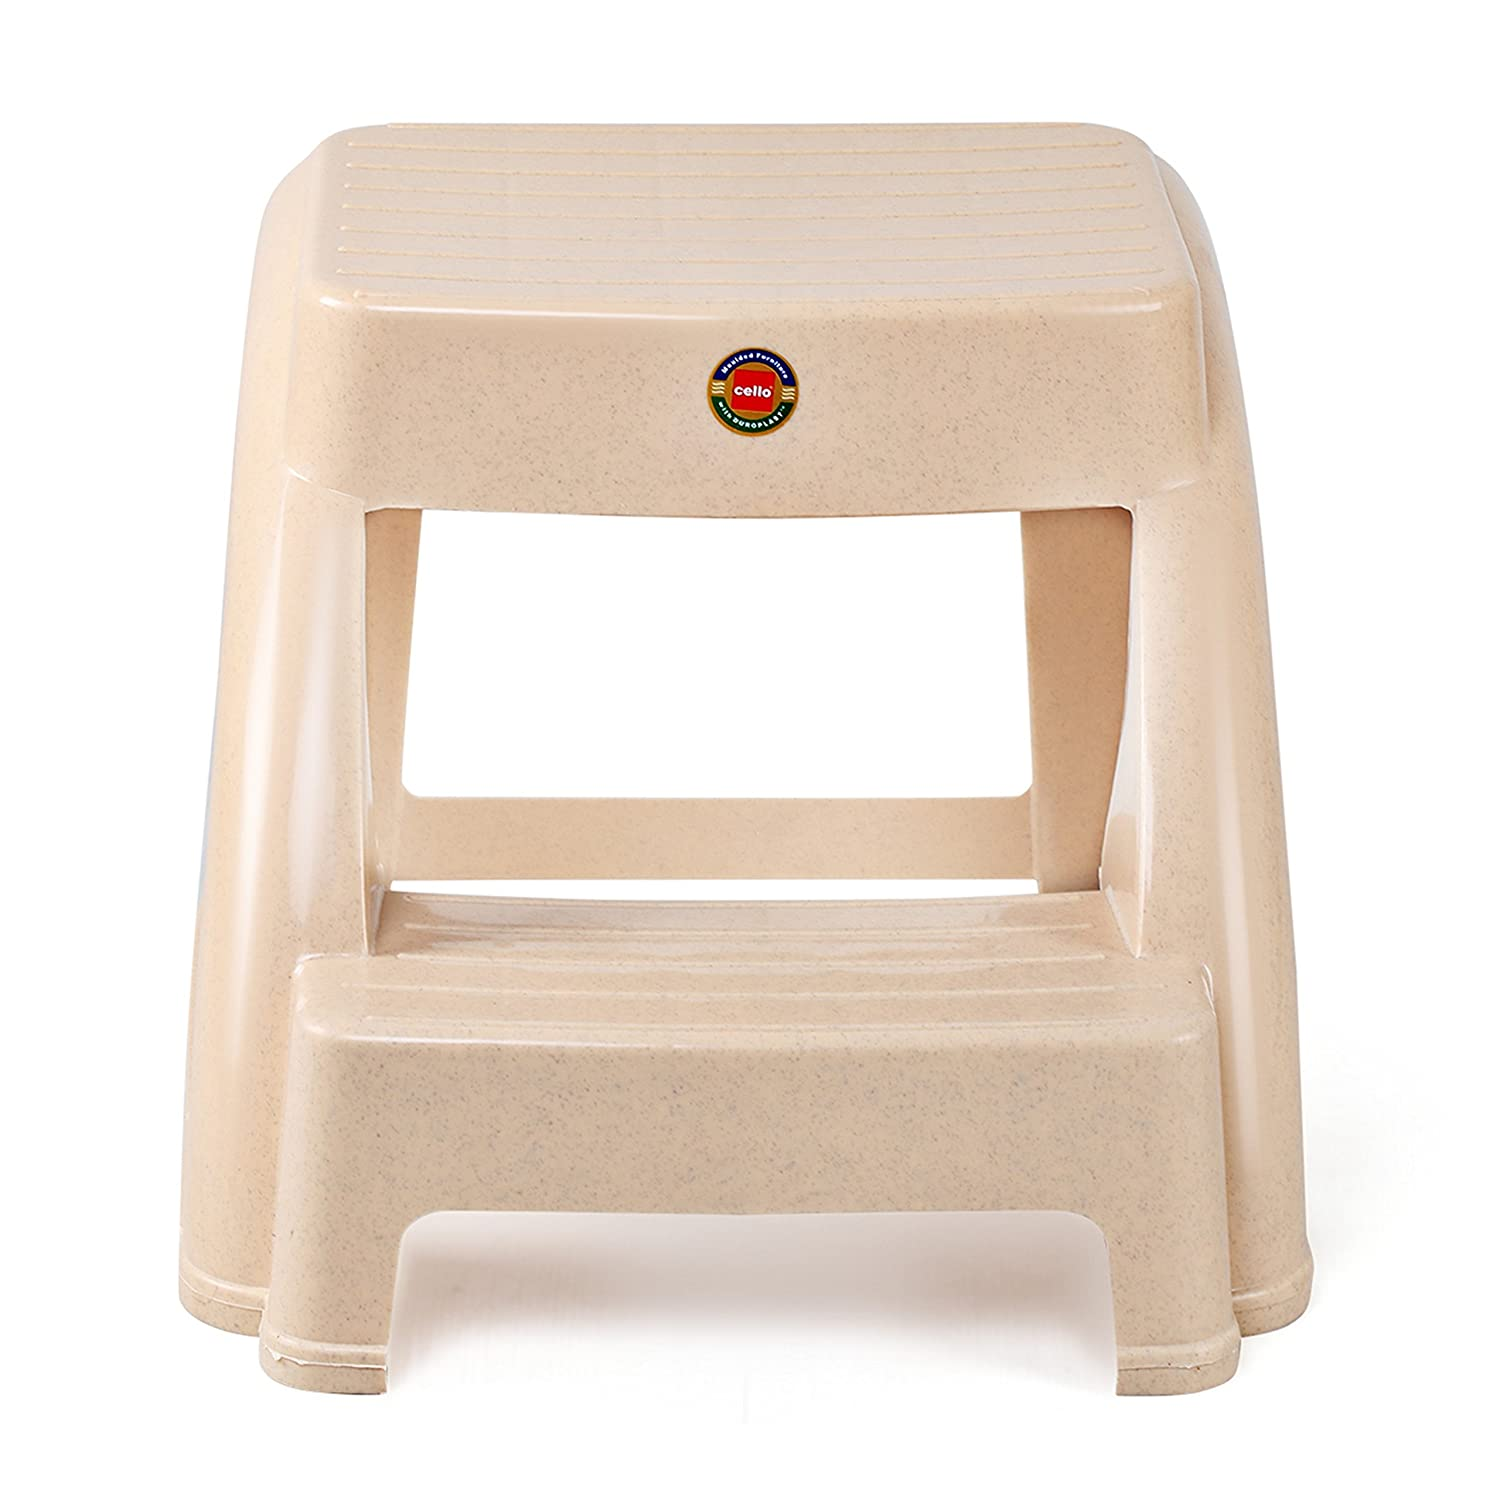 Wondrous Cello Steppy Stool Marble Beige Amazon In Home Kitchen Caraccident5 Cool Chair Designs And Ideas Caraccident5Info